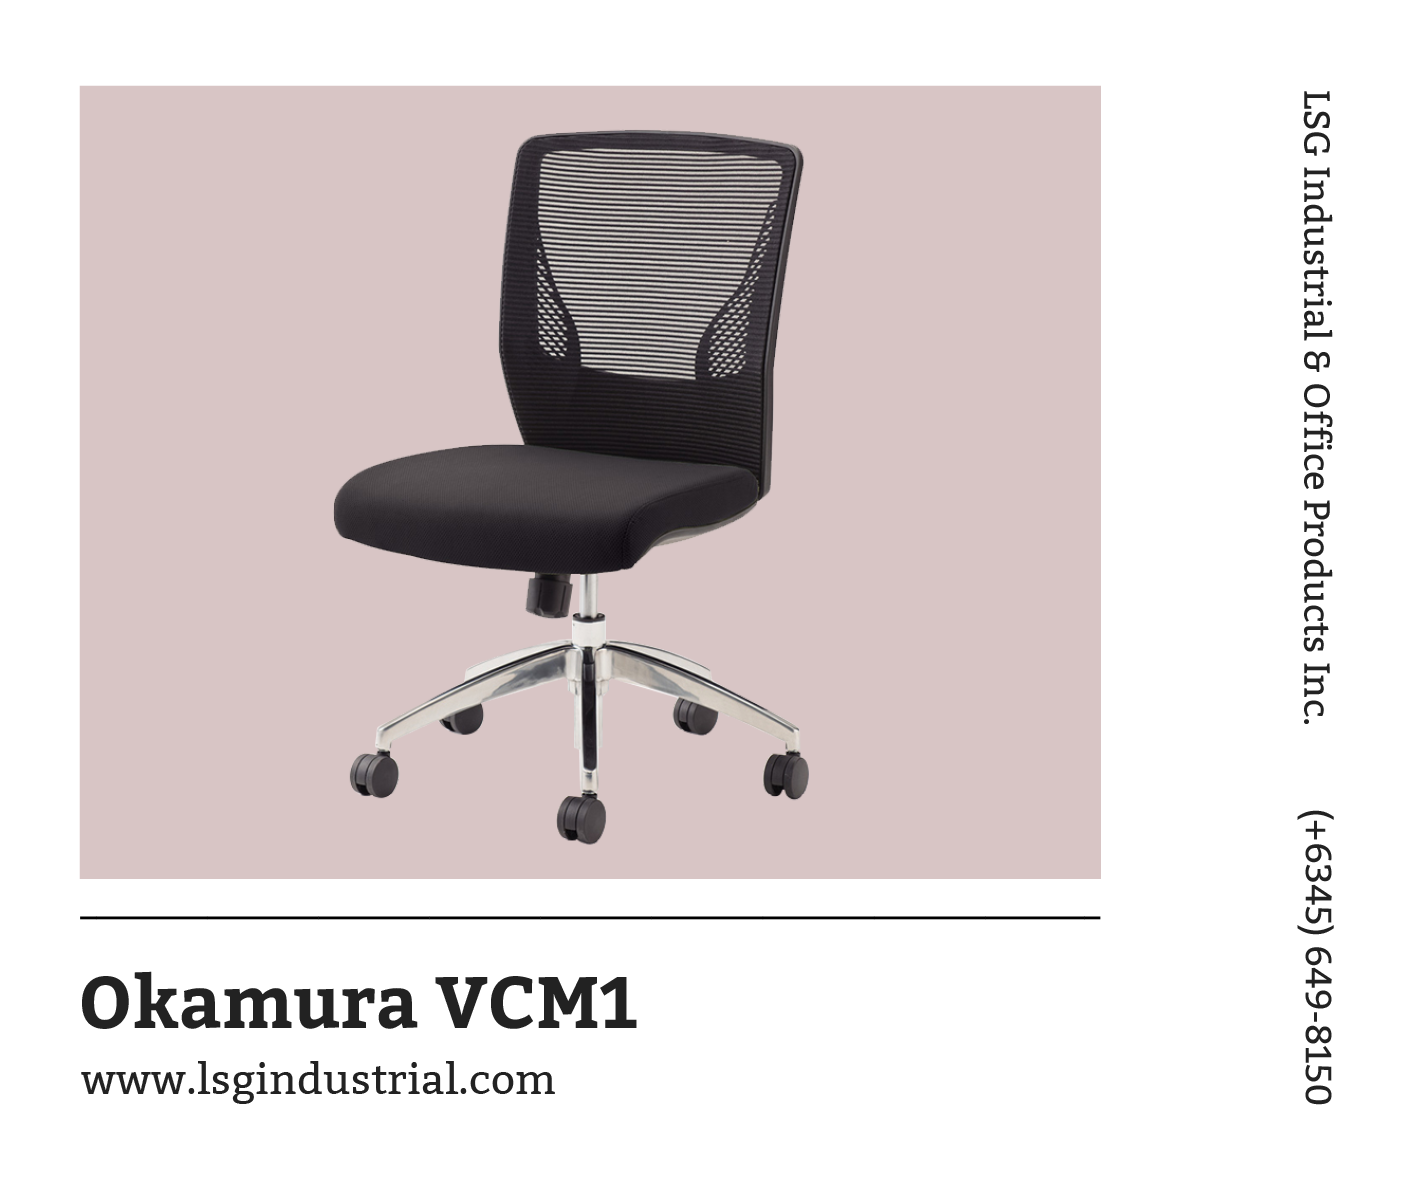 Work Comfortably In Your Office Using This Ergonomic Chair From Okamura Vcm1 Boasts A Mesh Back With Wing Back Support S Ergonomic Chair Office Chair Chair